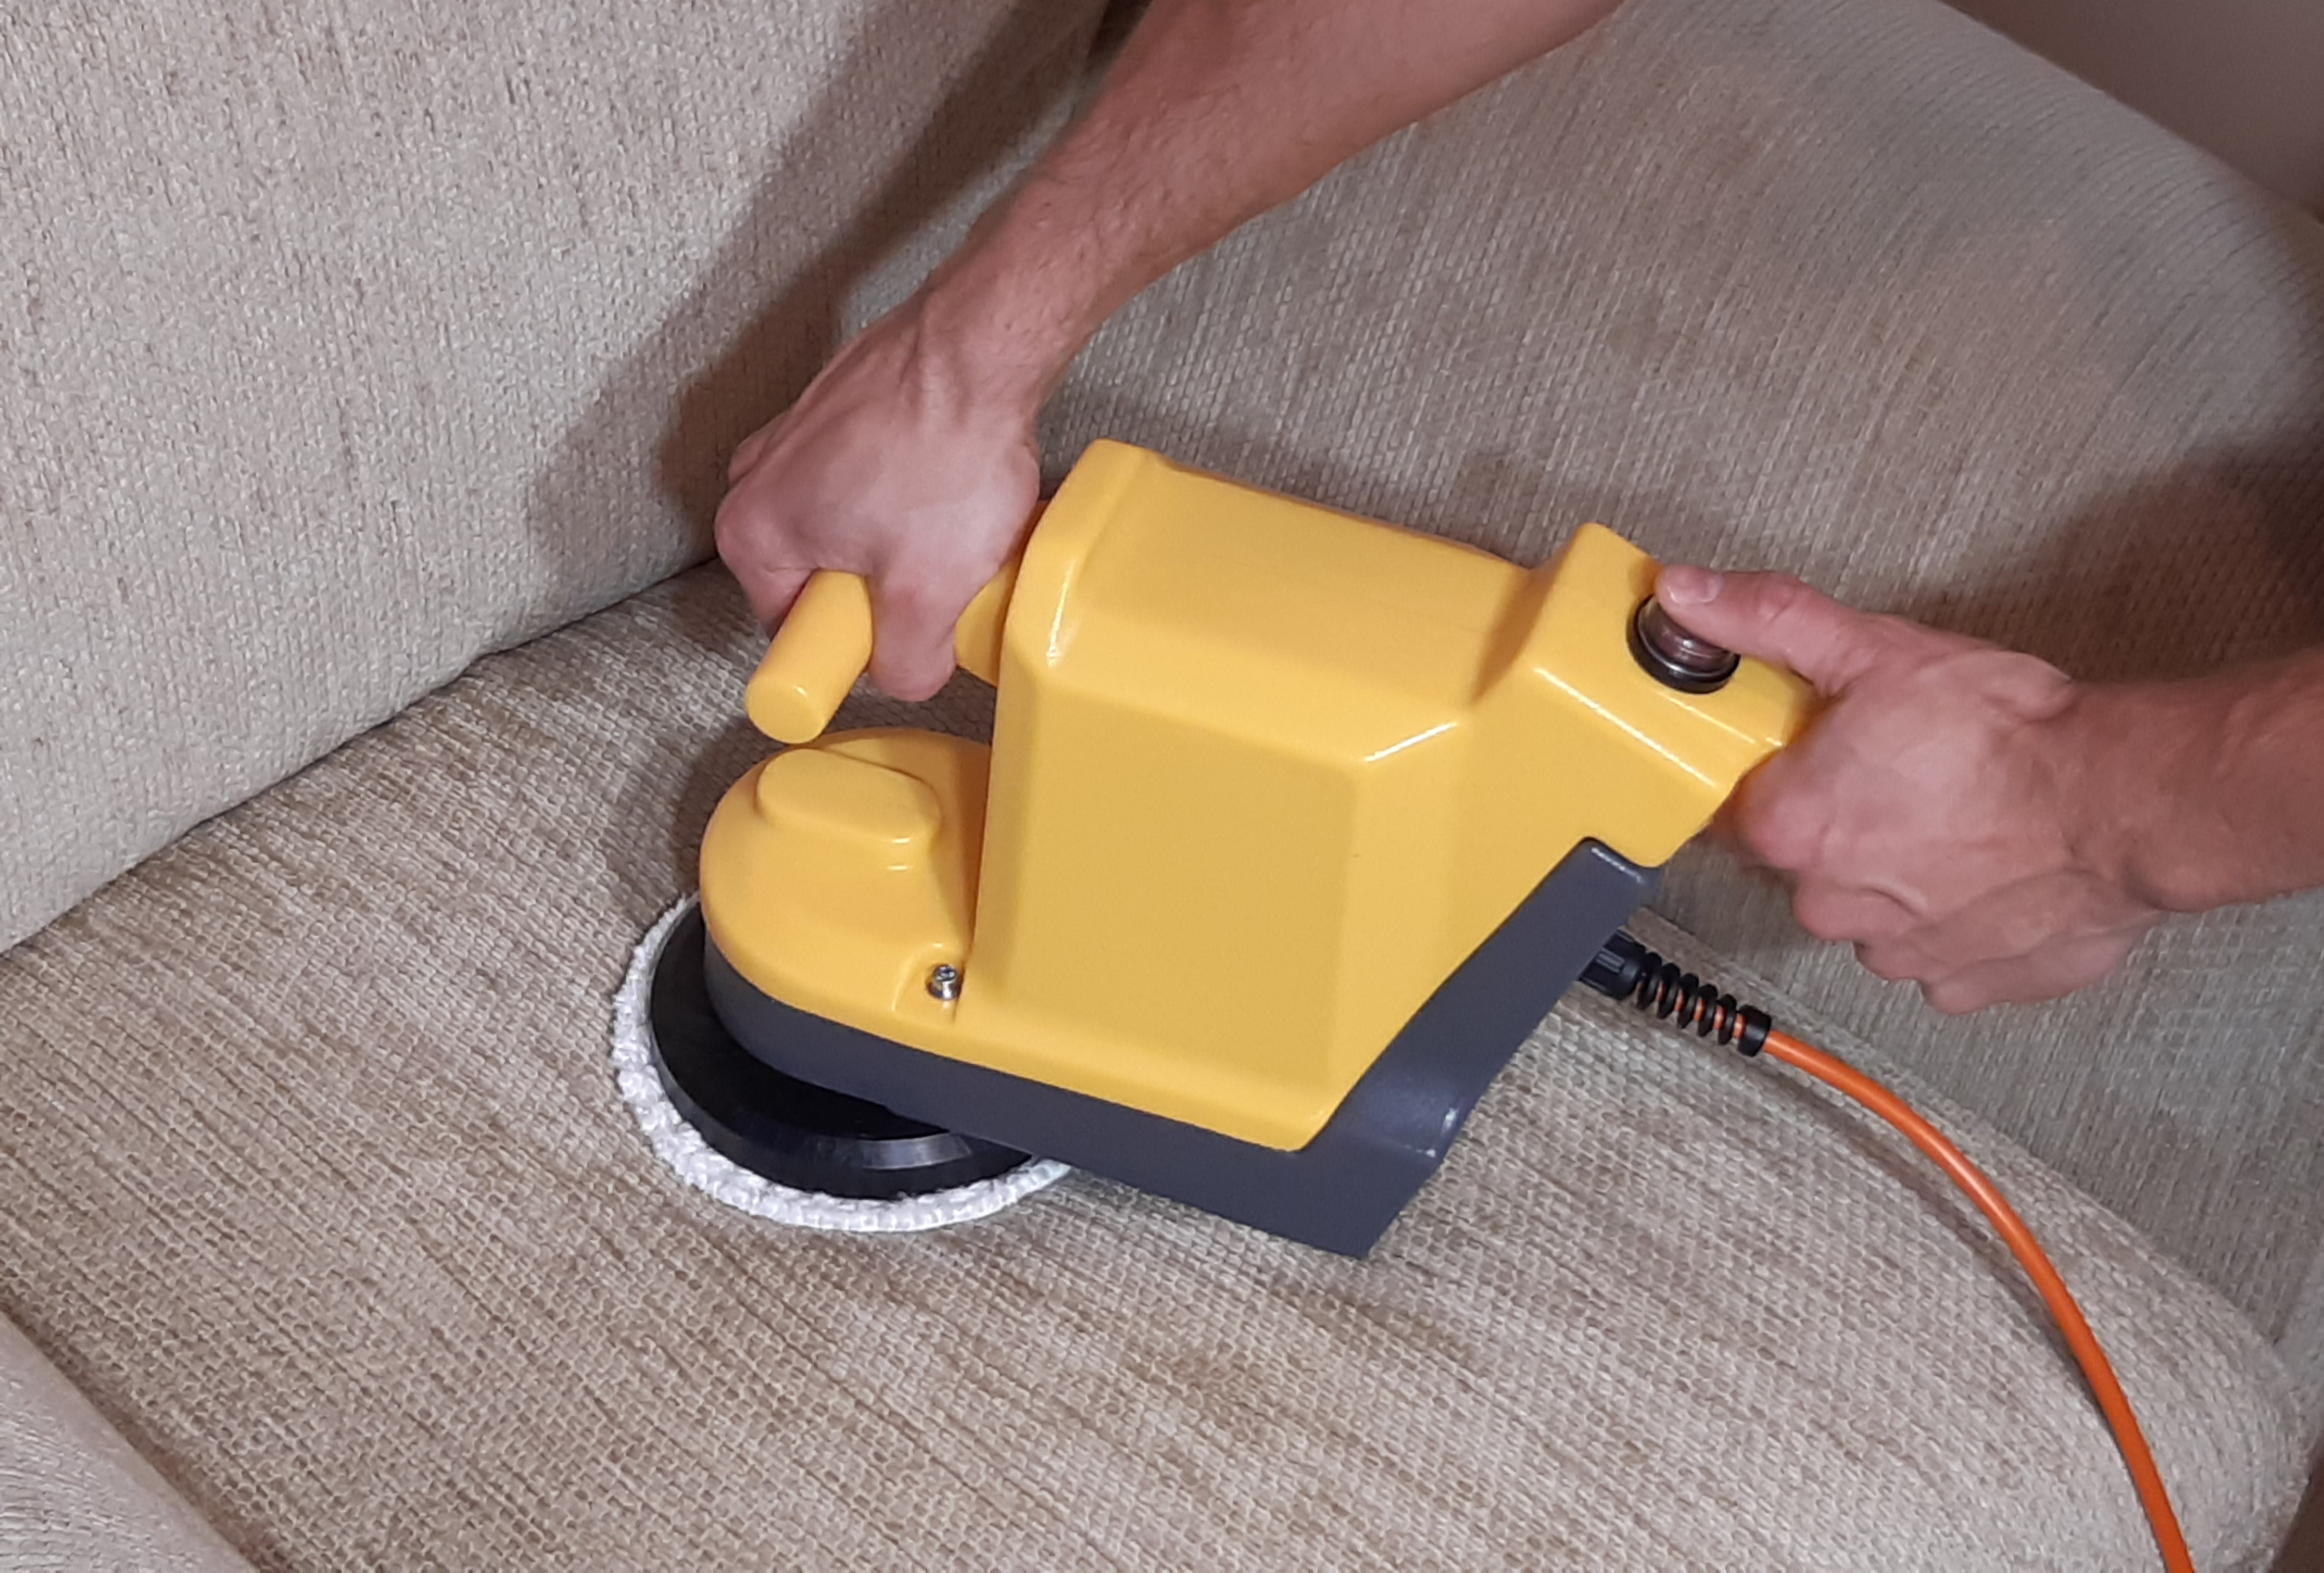 octokleen sofa cleaning